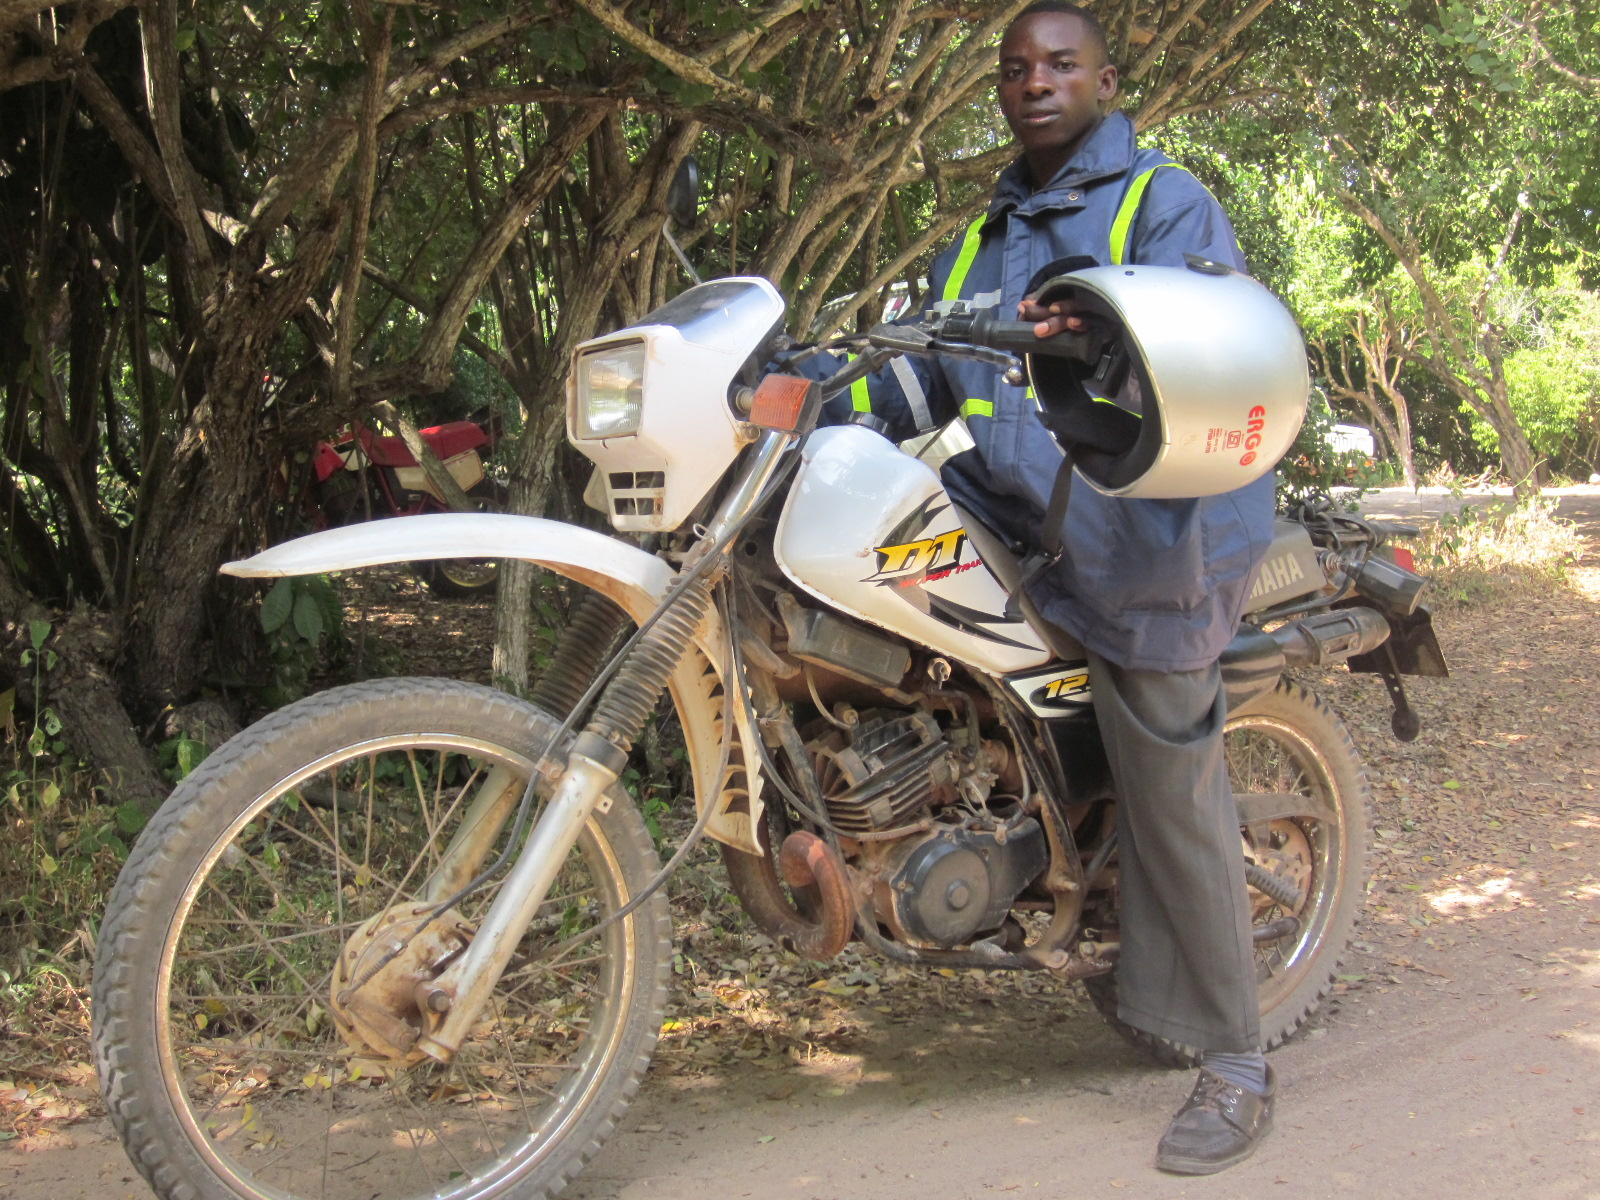 Bimbo, a member of A Rocha's ASSETS team, on his motorcycle dispatching the bursary cheques to the ASSETS students